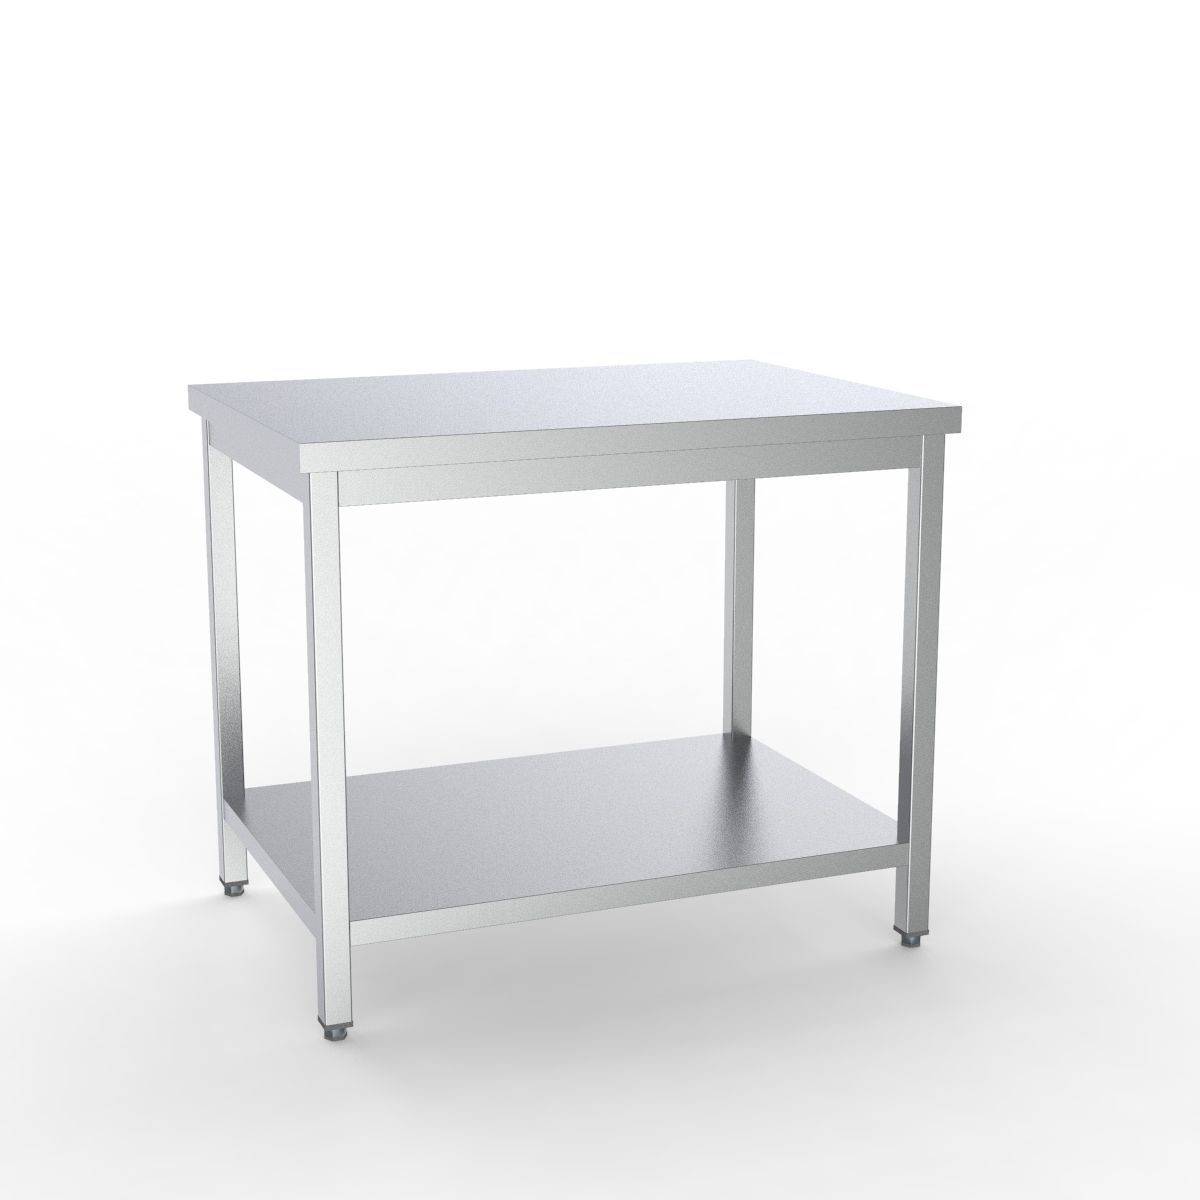 Combisteel Full 430 Stainless Steel 600 Line Worktable With Shelf 1800mm Wide - 7333.0072